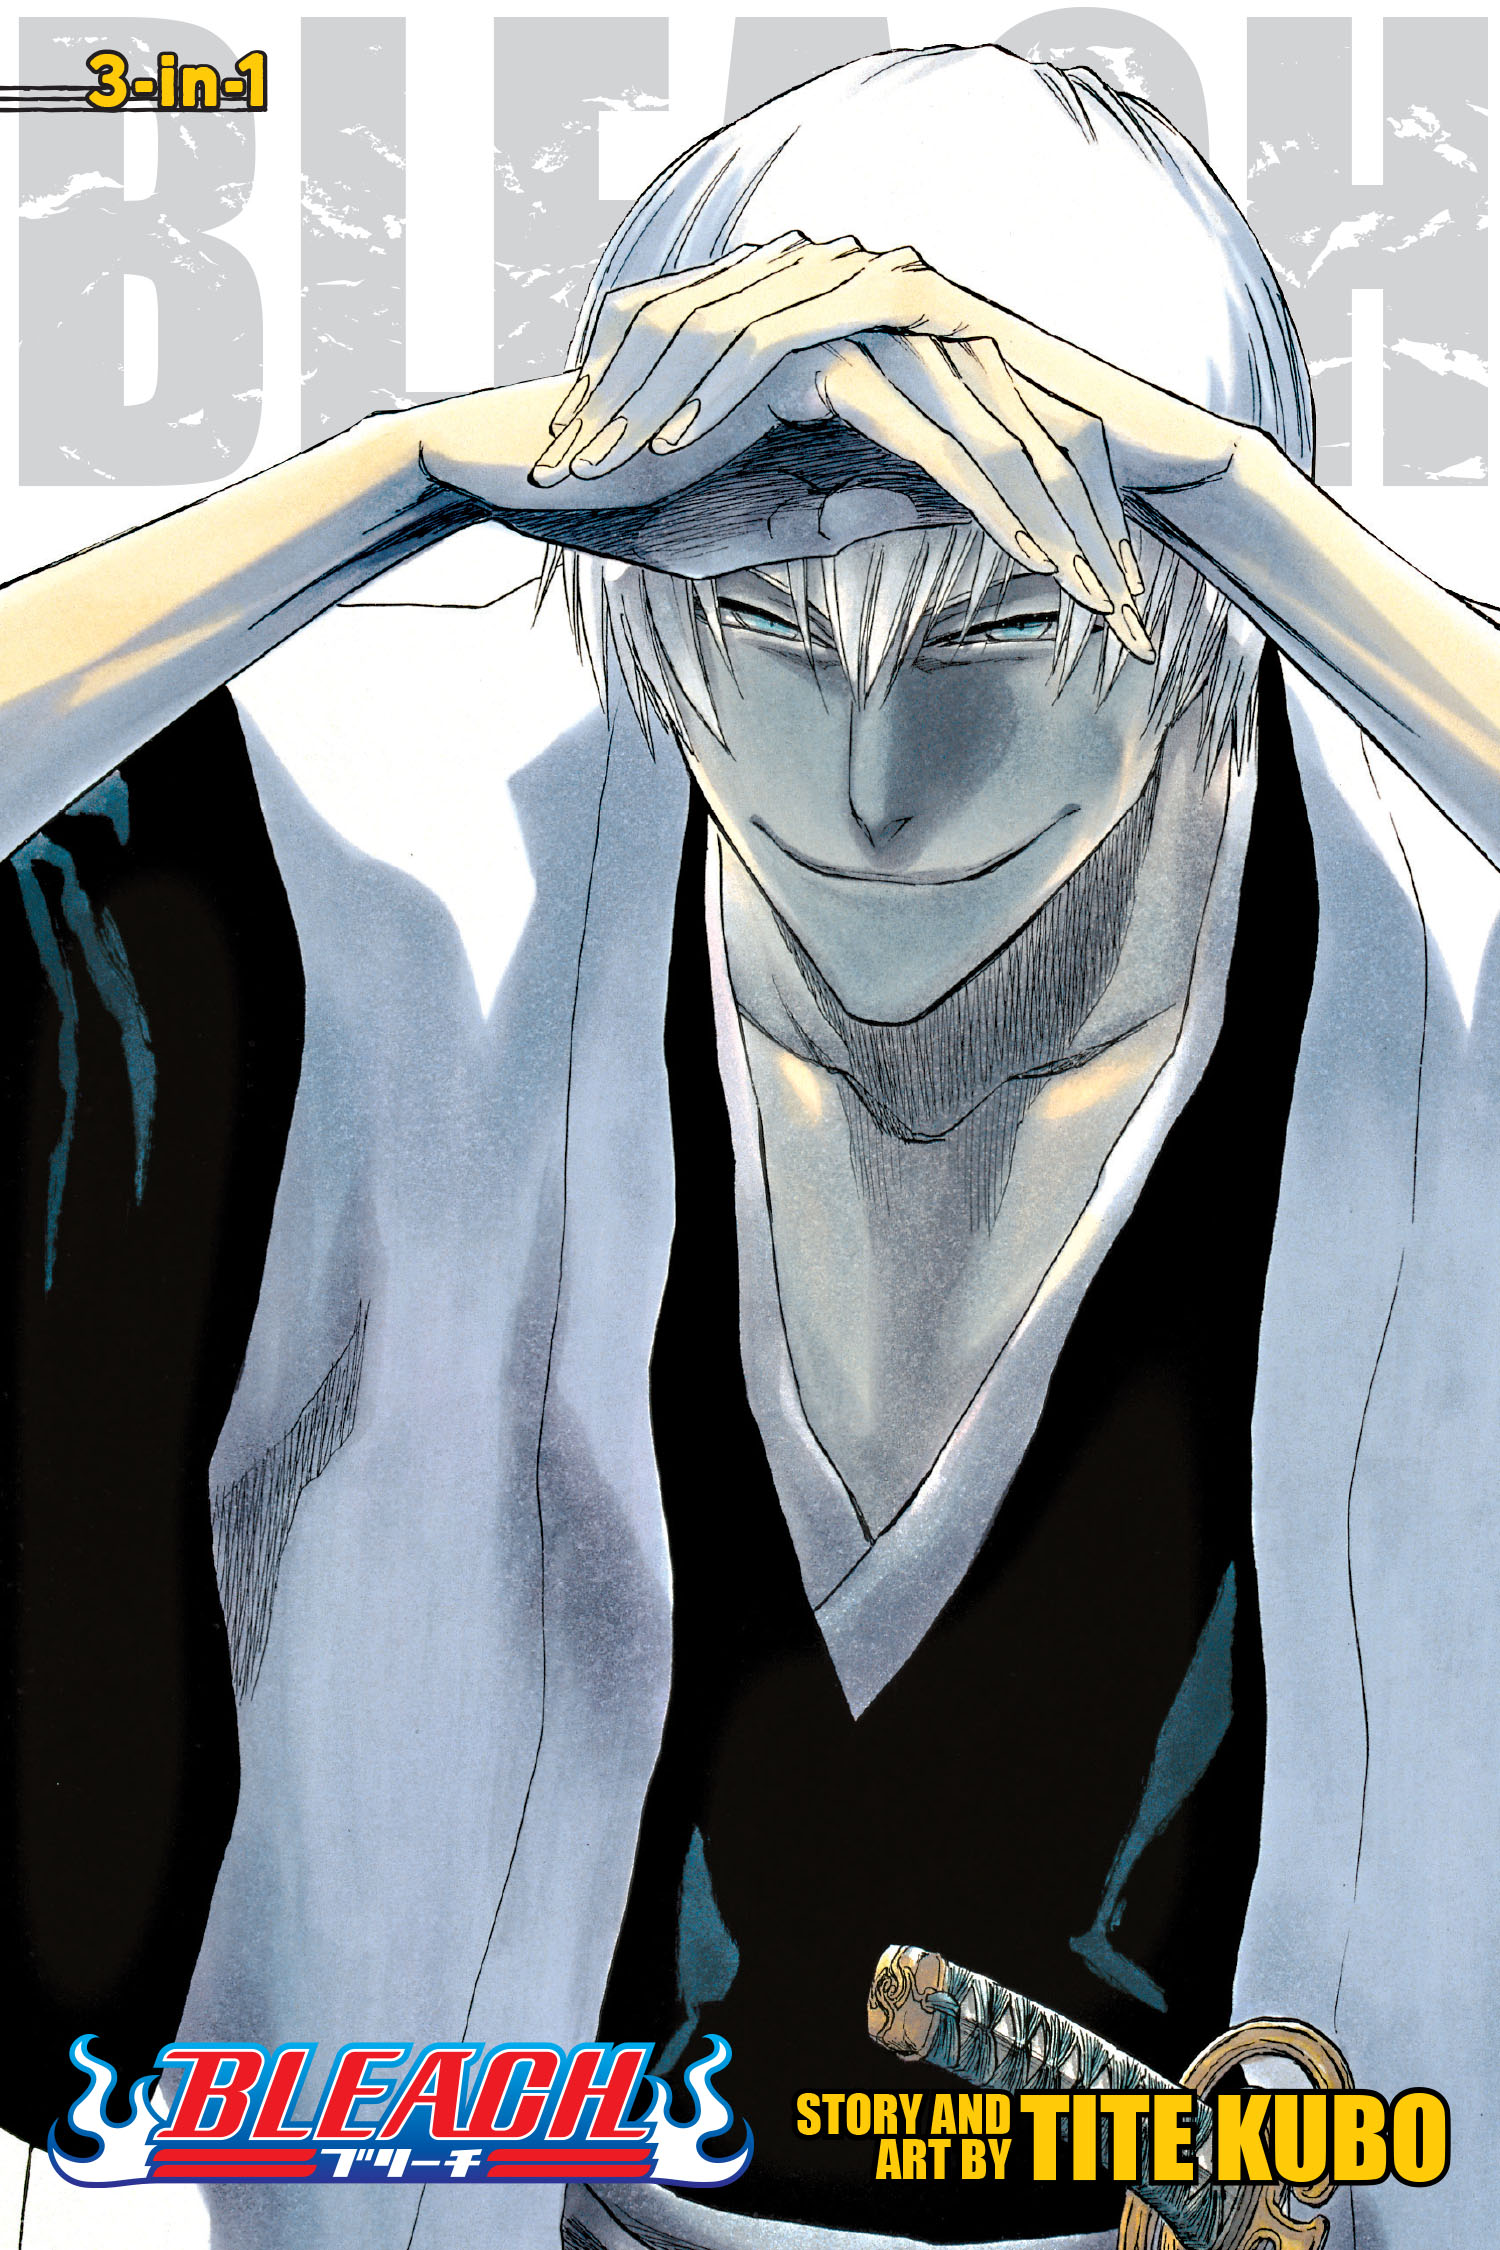 Bleach (3 in 1 edition) vol 7 9781421559117 hr